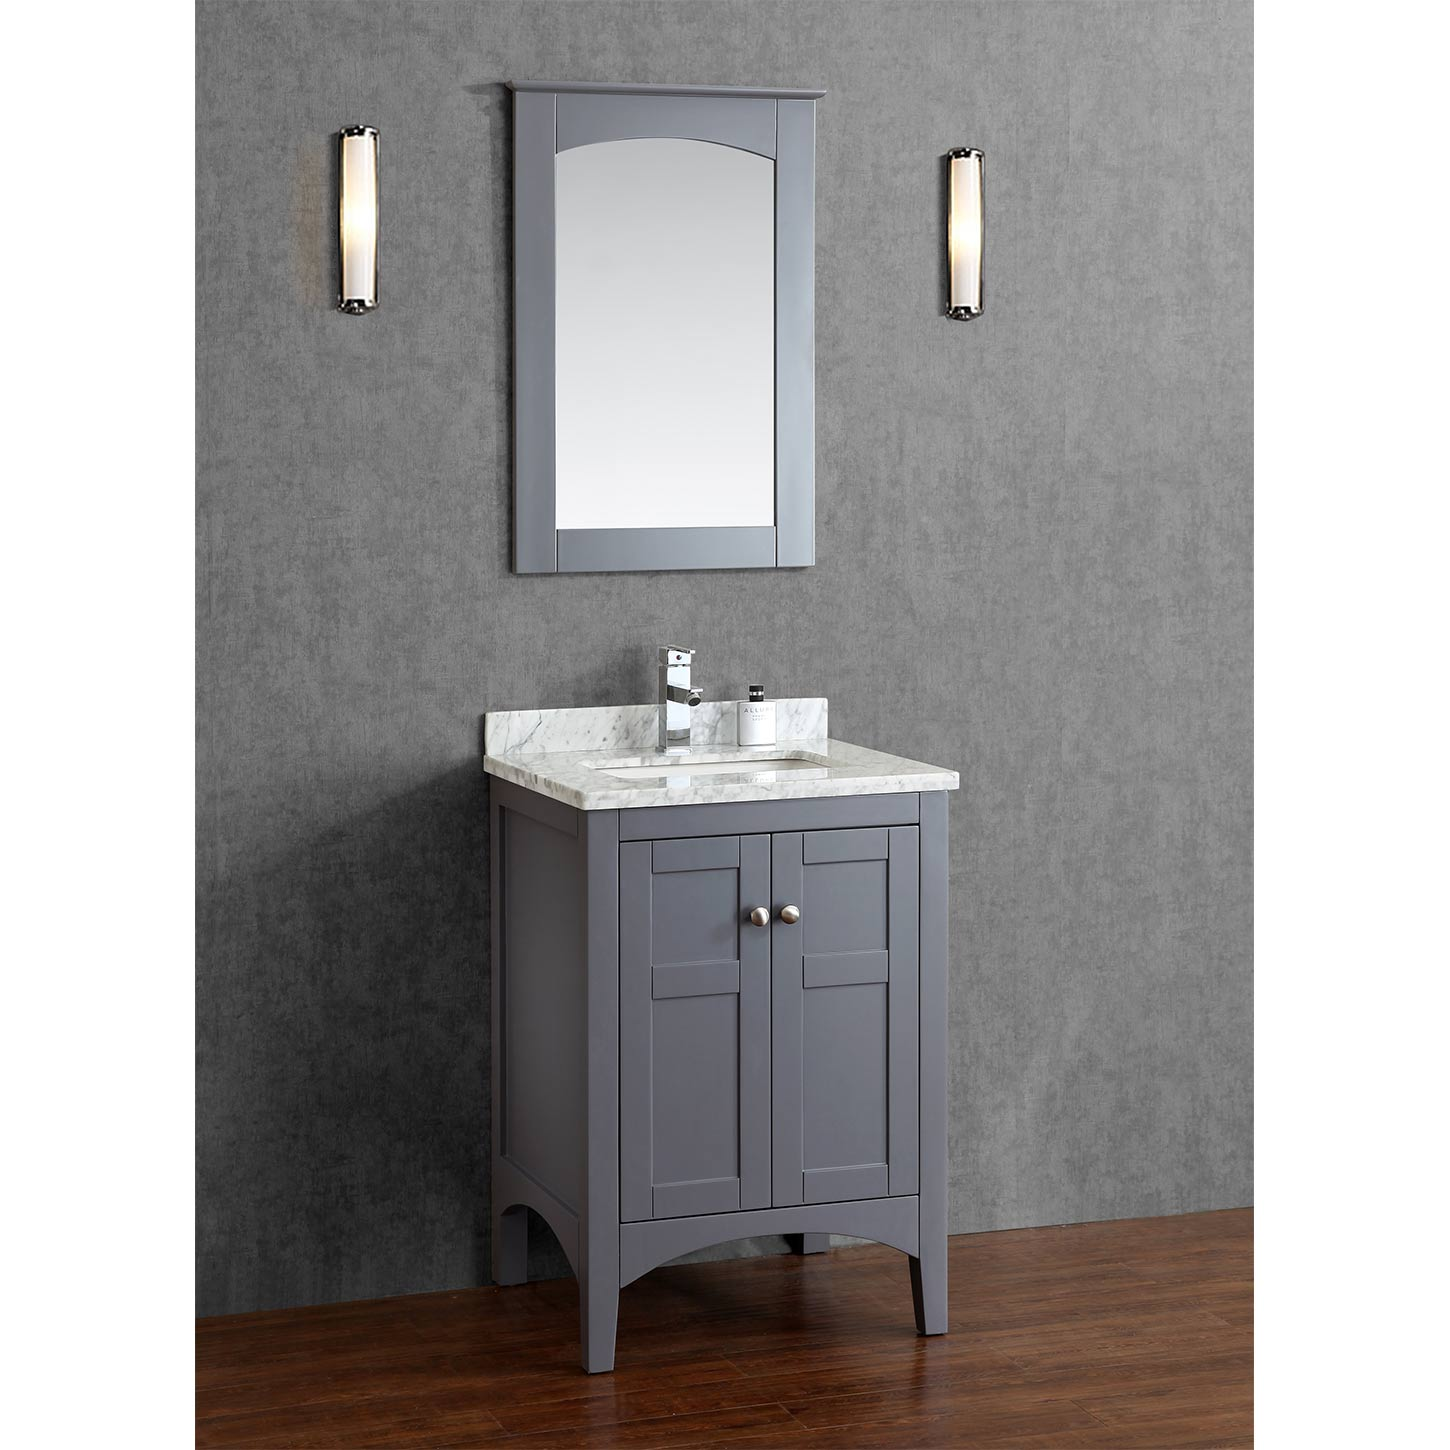 Book of bathroom vanities gray in ireland by emily Bathroom cabinets gray